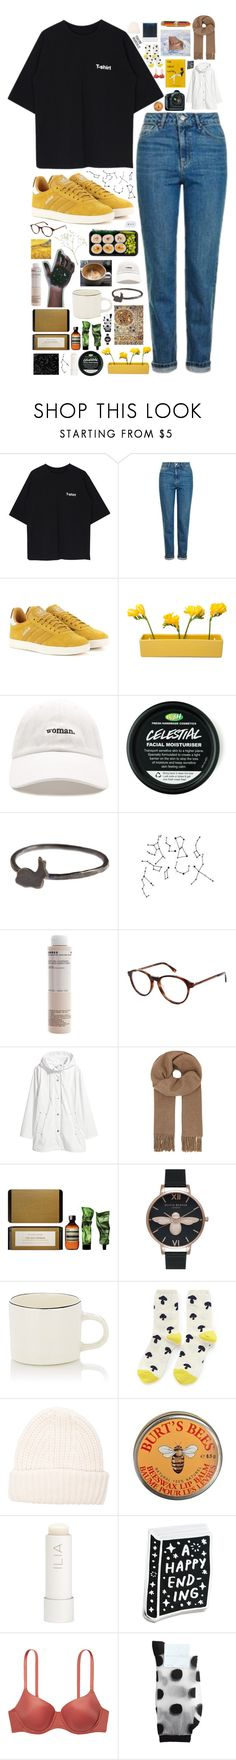 """I GOTTA GET BETTER"" by kappucino ❤ liked on Polyvore featuring Topshop, adidas Originals, Dot & Bo, Forever 21, Korres, Lacoste, H&M, Acne Studios, Eos and Aesop"